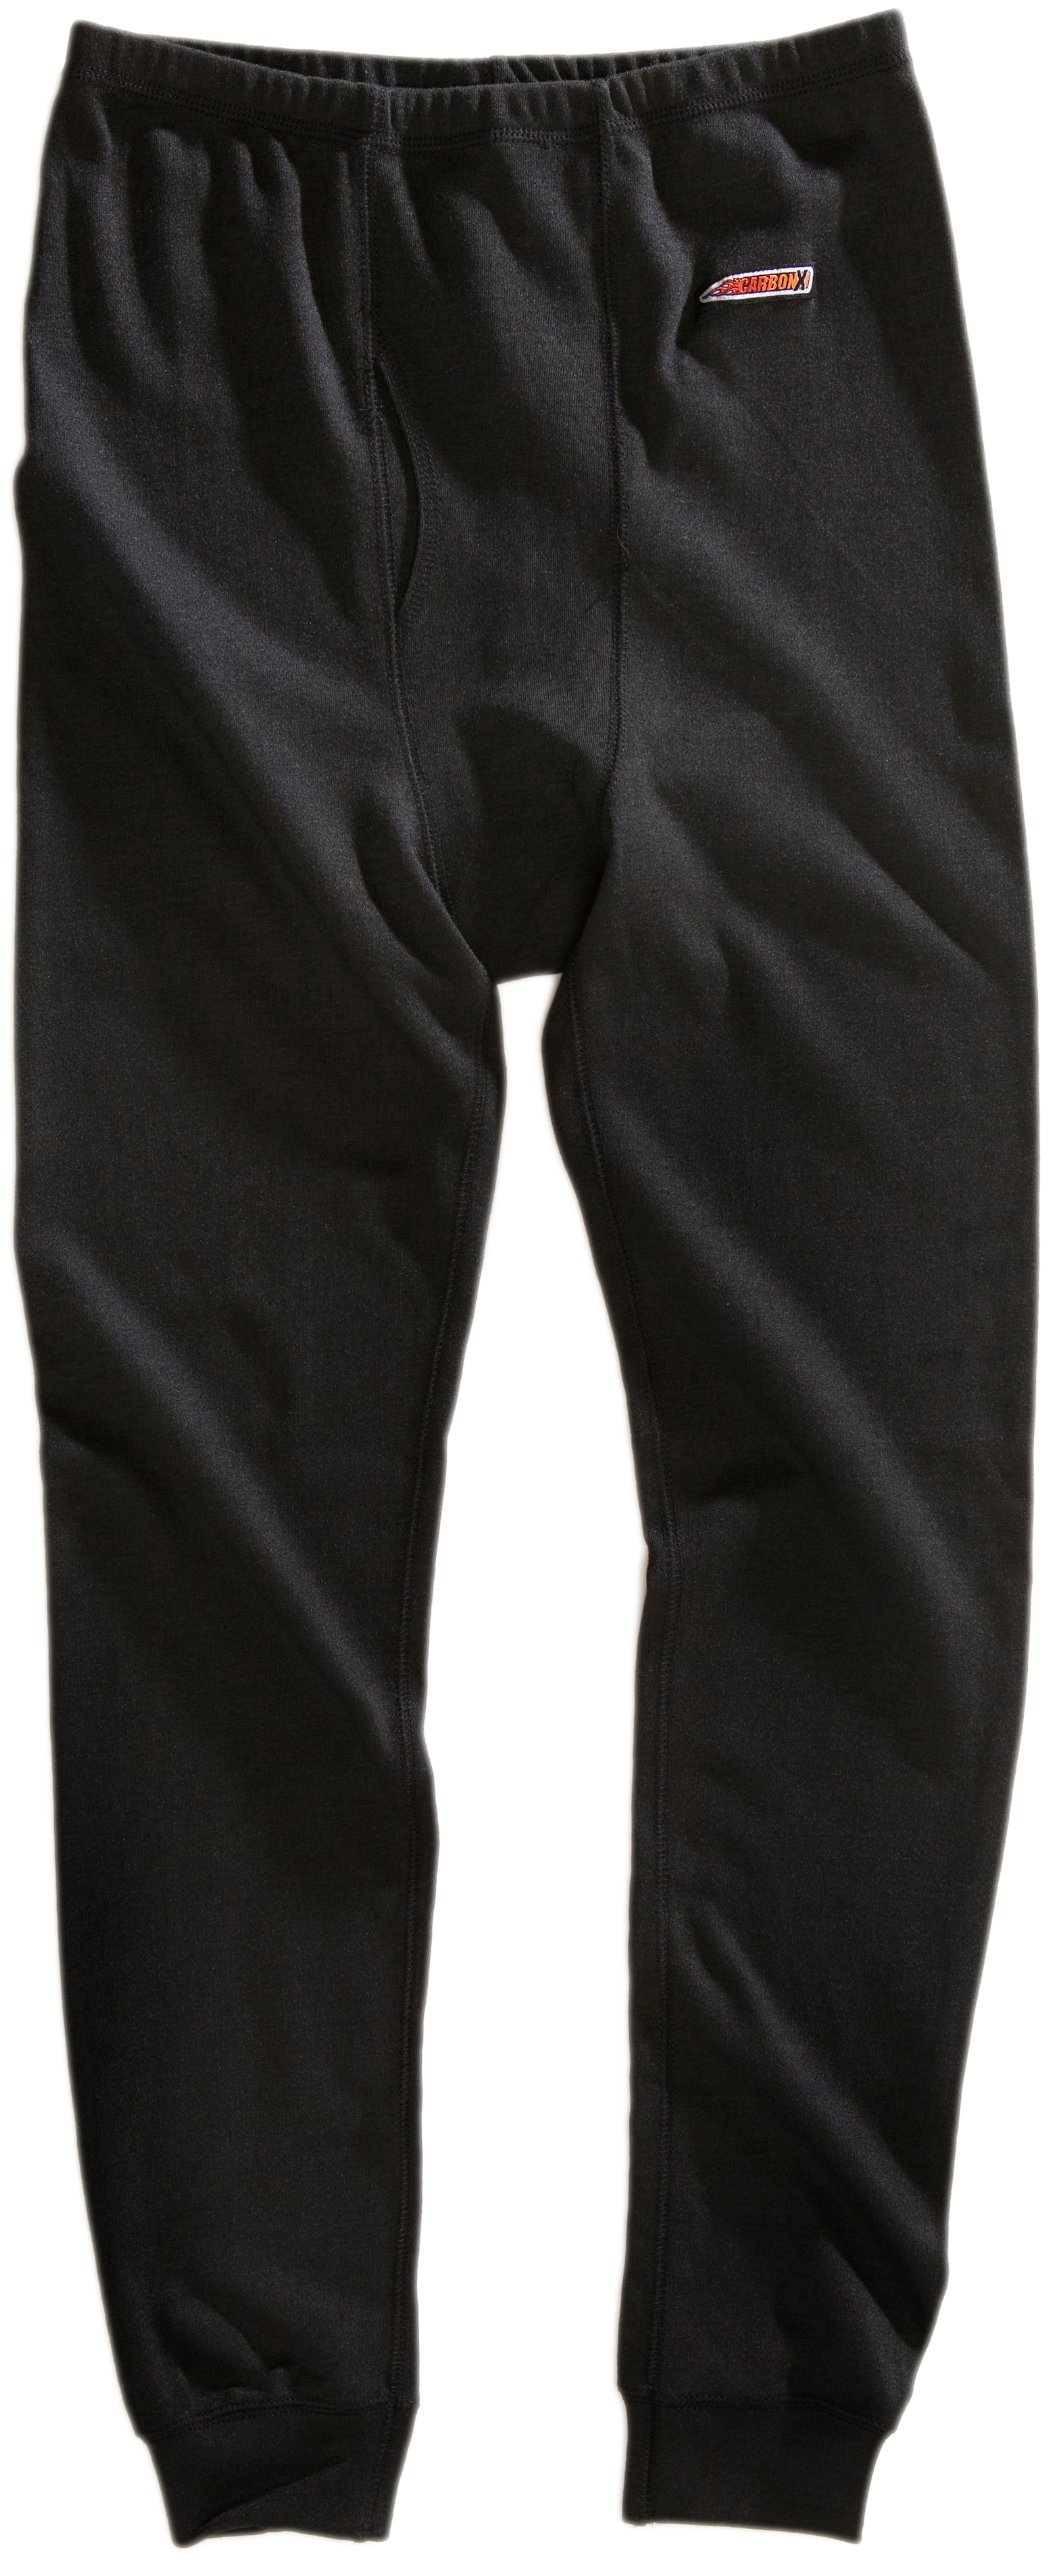 Chicago Protective Apparel Knit Carbon-X Underwear, ''Long John'' Style Pant 2XL